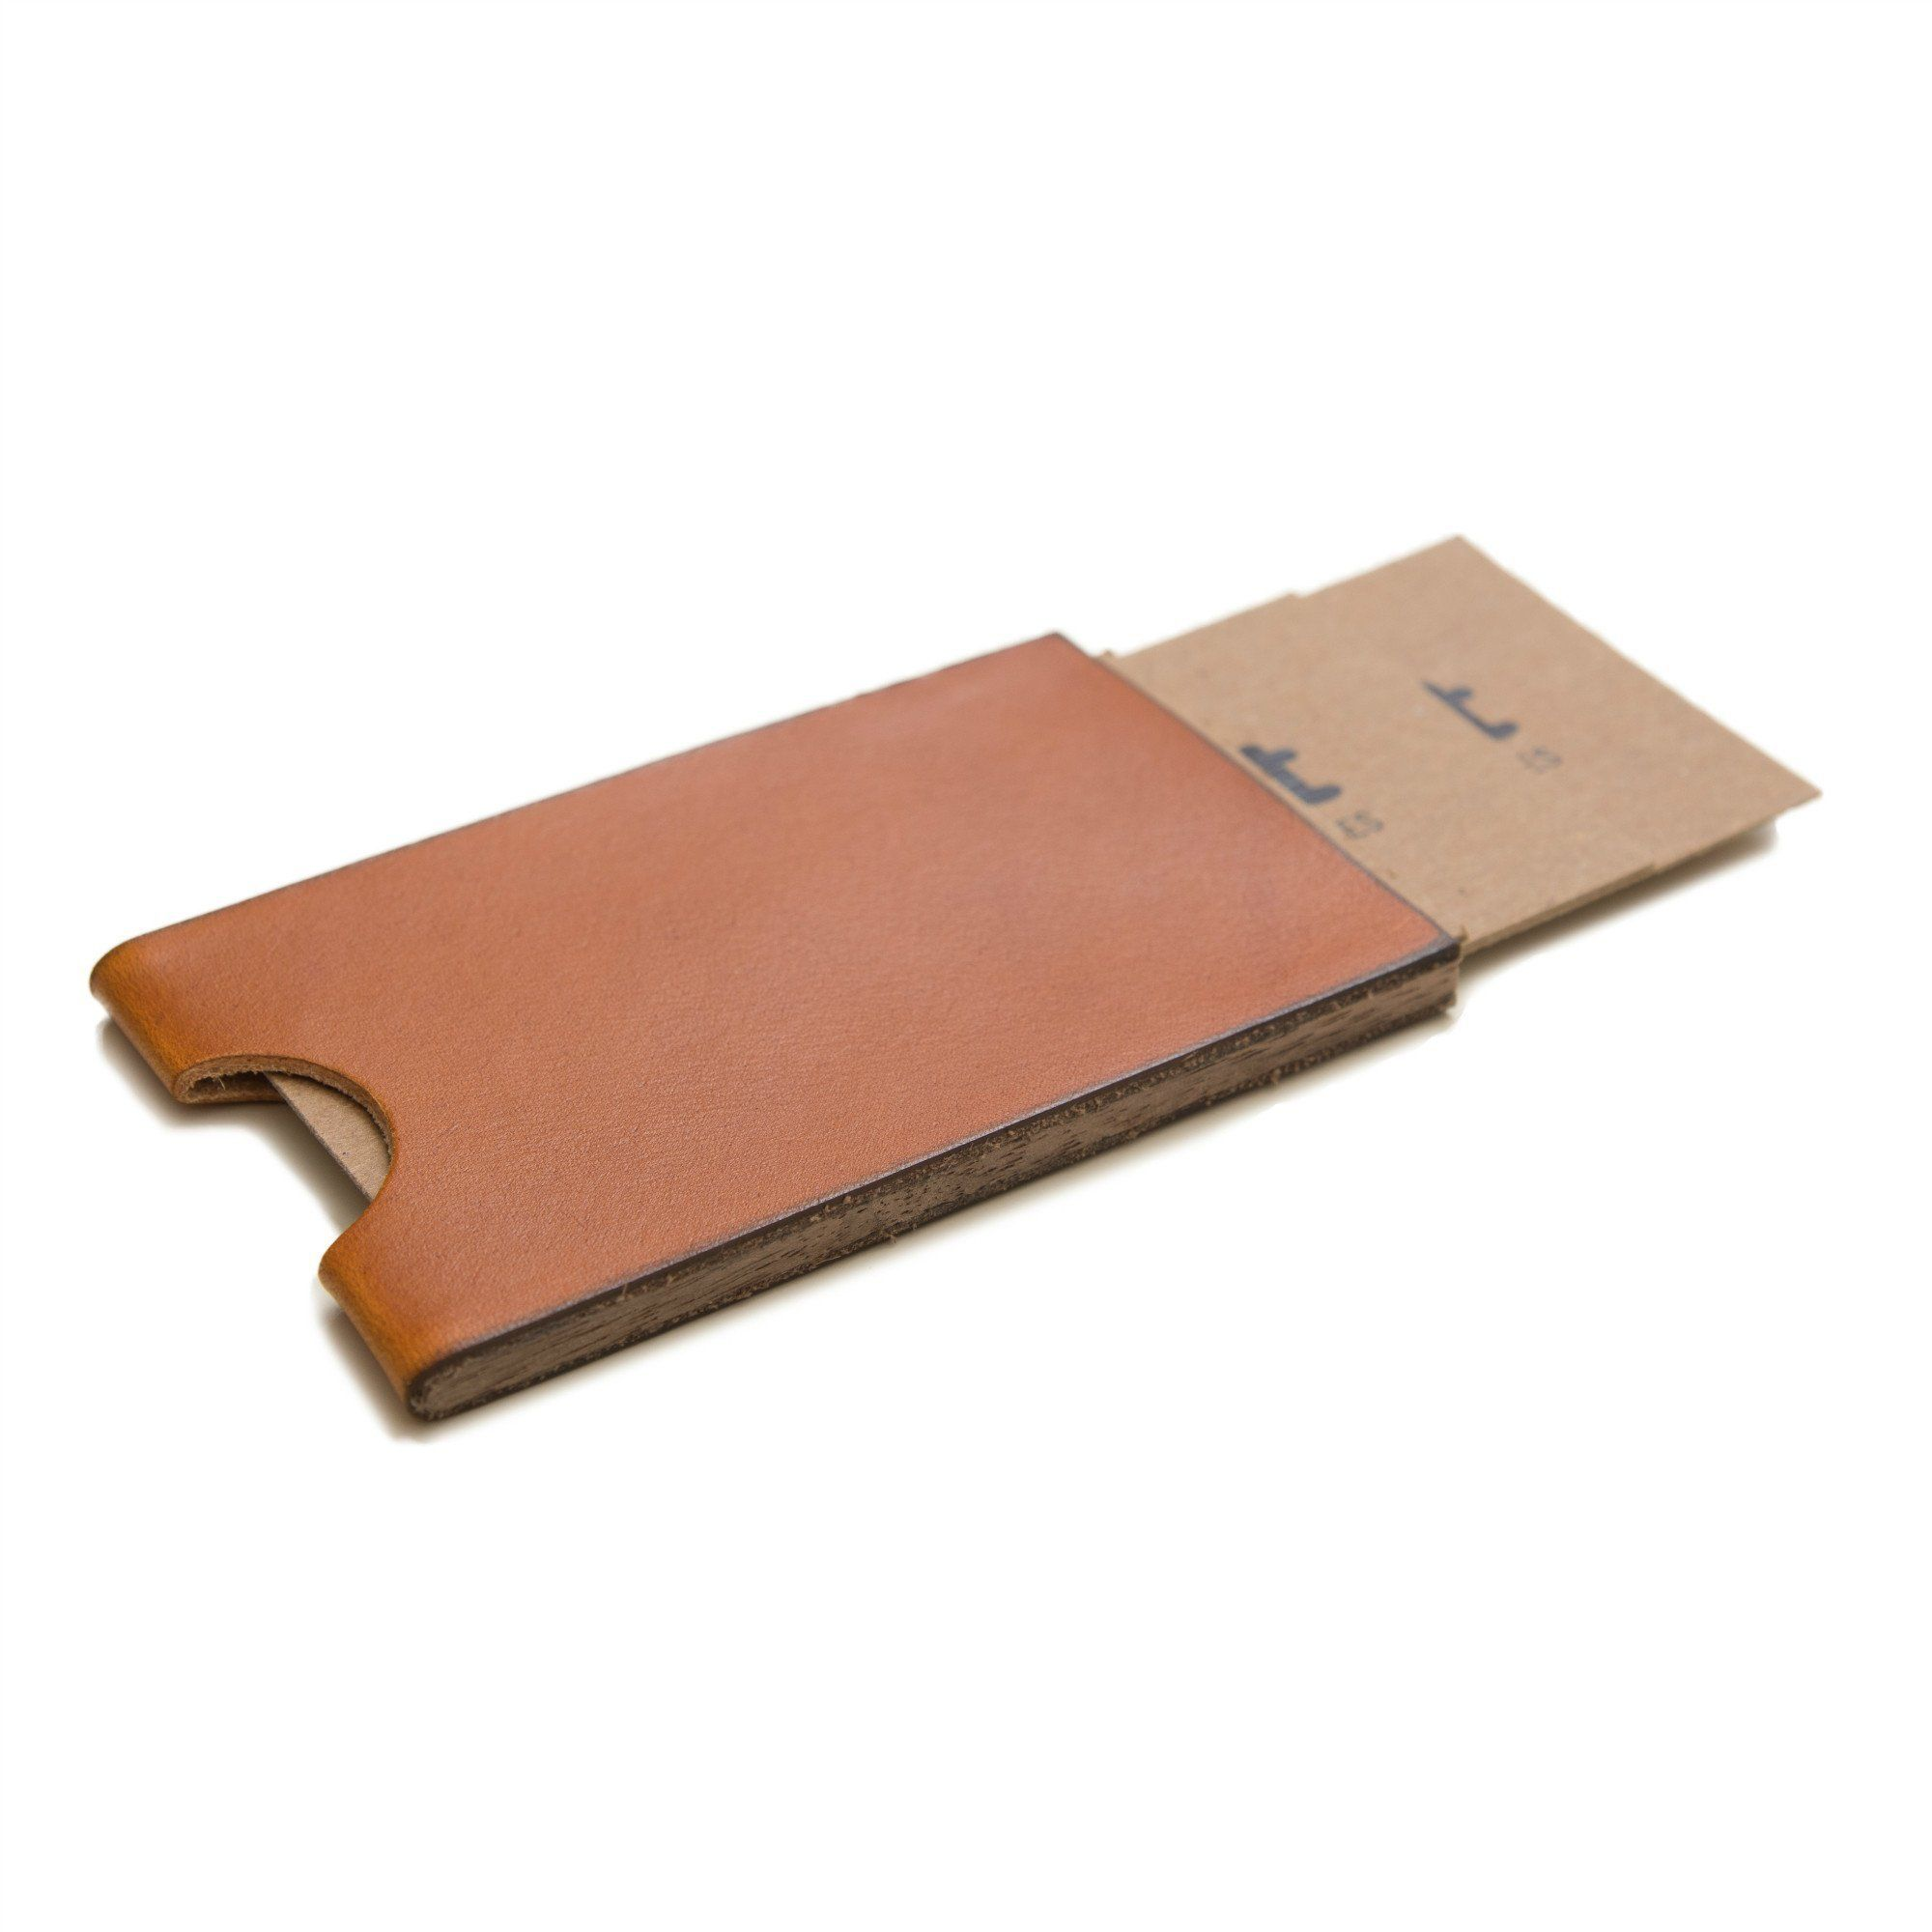 Business Card Case | Business card case, Business cards and Business